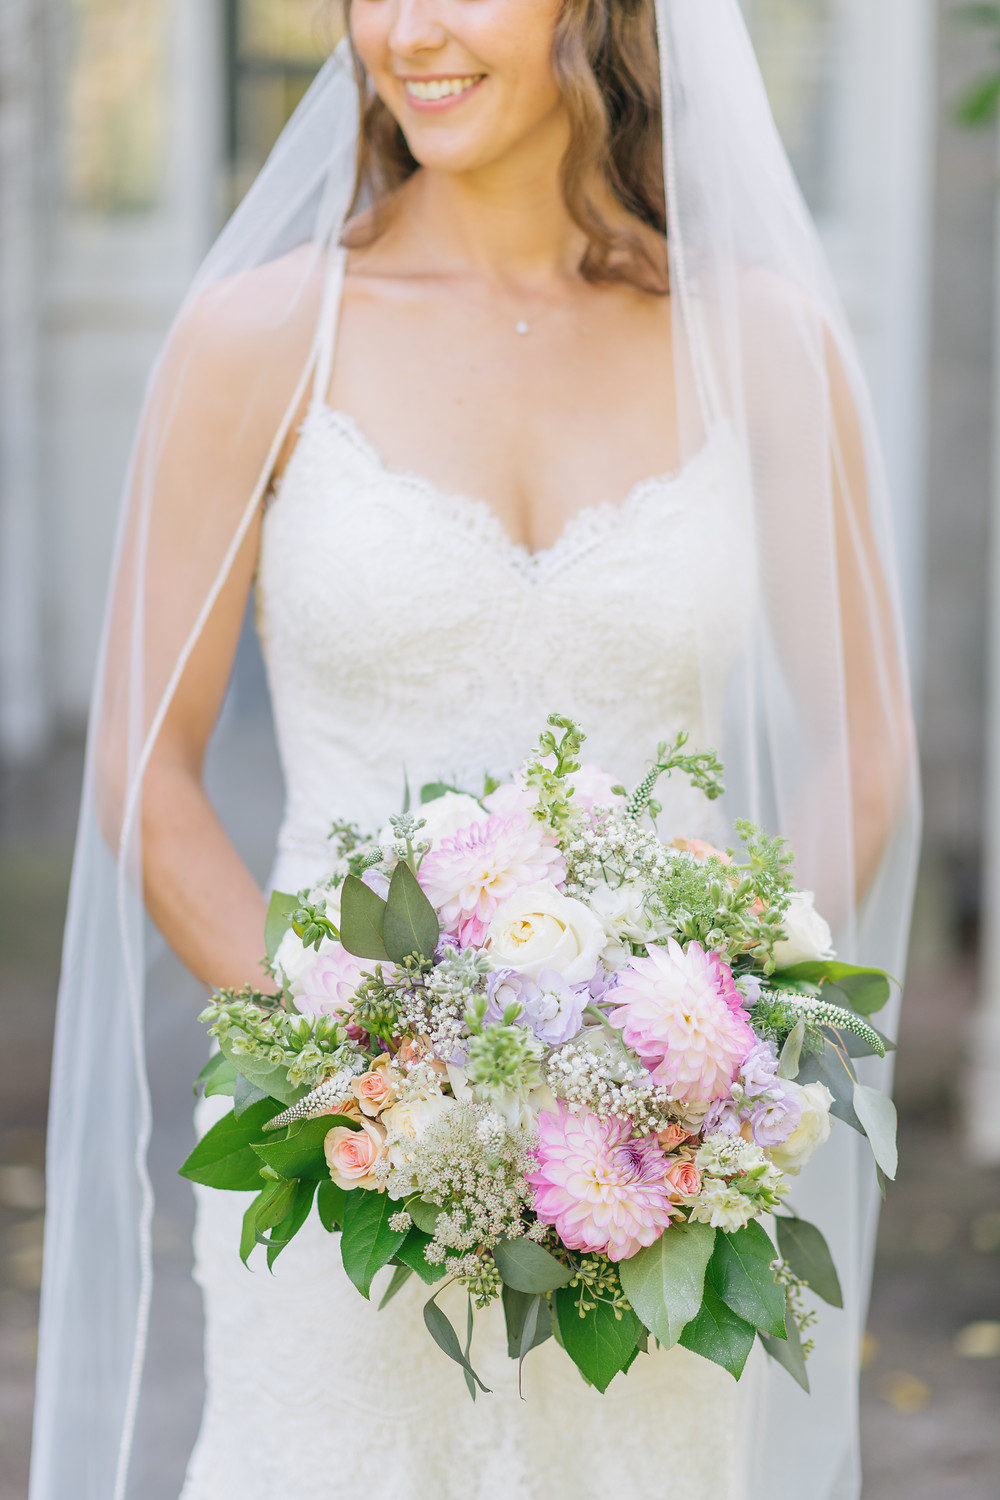 Bride holding her loose styled, pastel coloured bouquet. Full of Dahlias, Spray Roses, Queen's Anne Lace, Veronica, Seeded Eucalyptus, Salal, Babies Breath